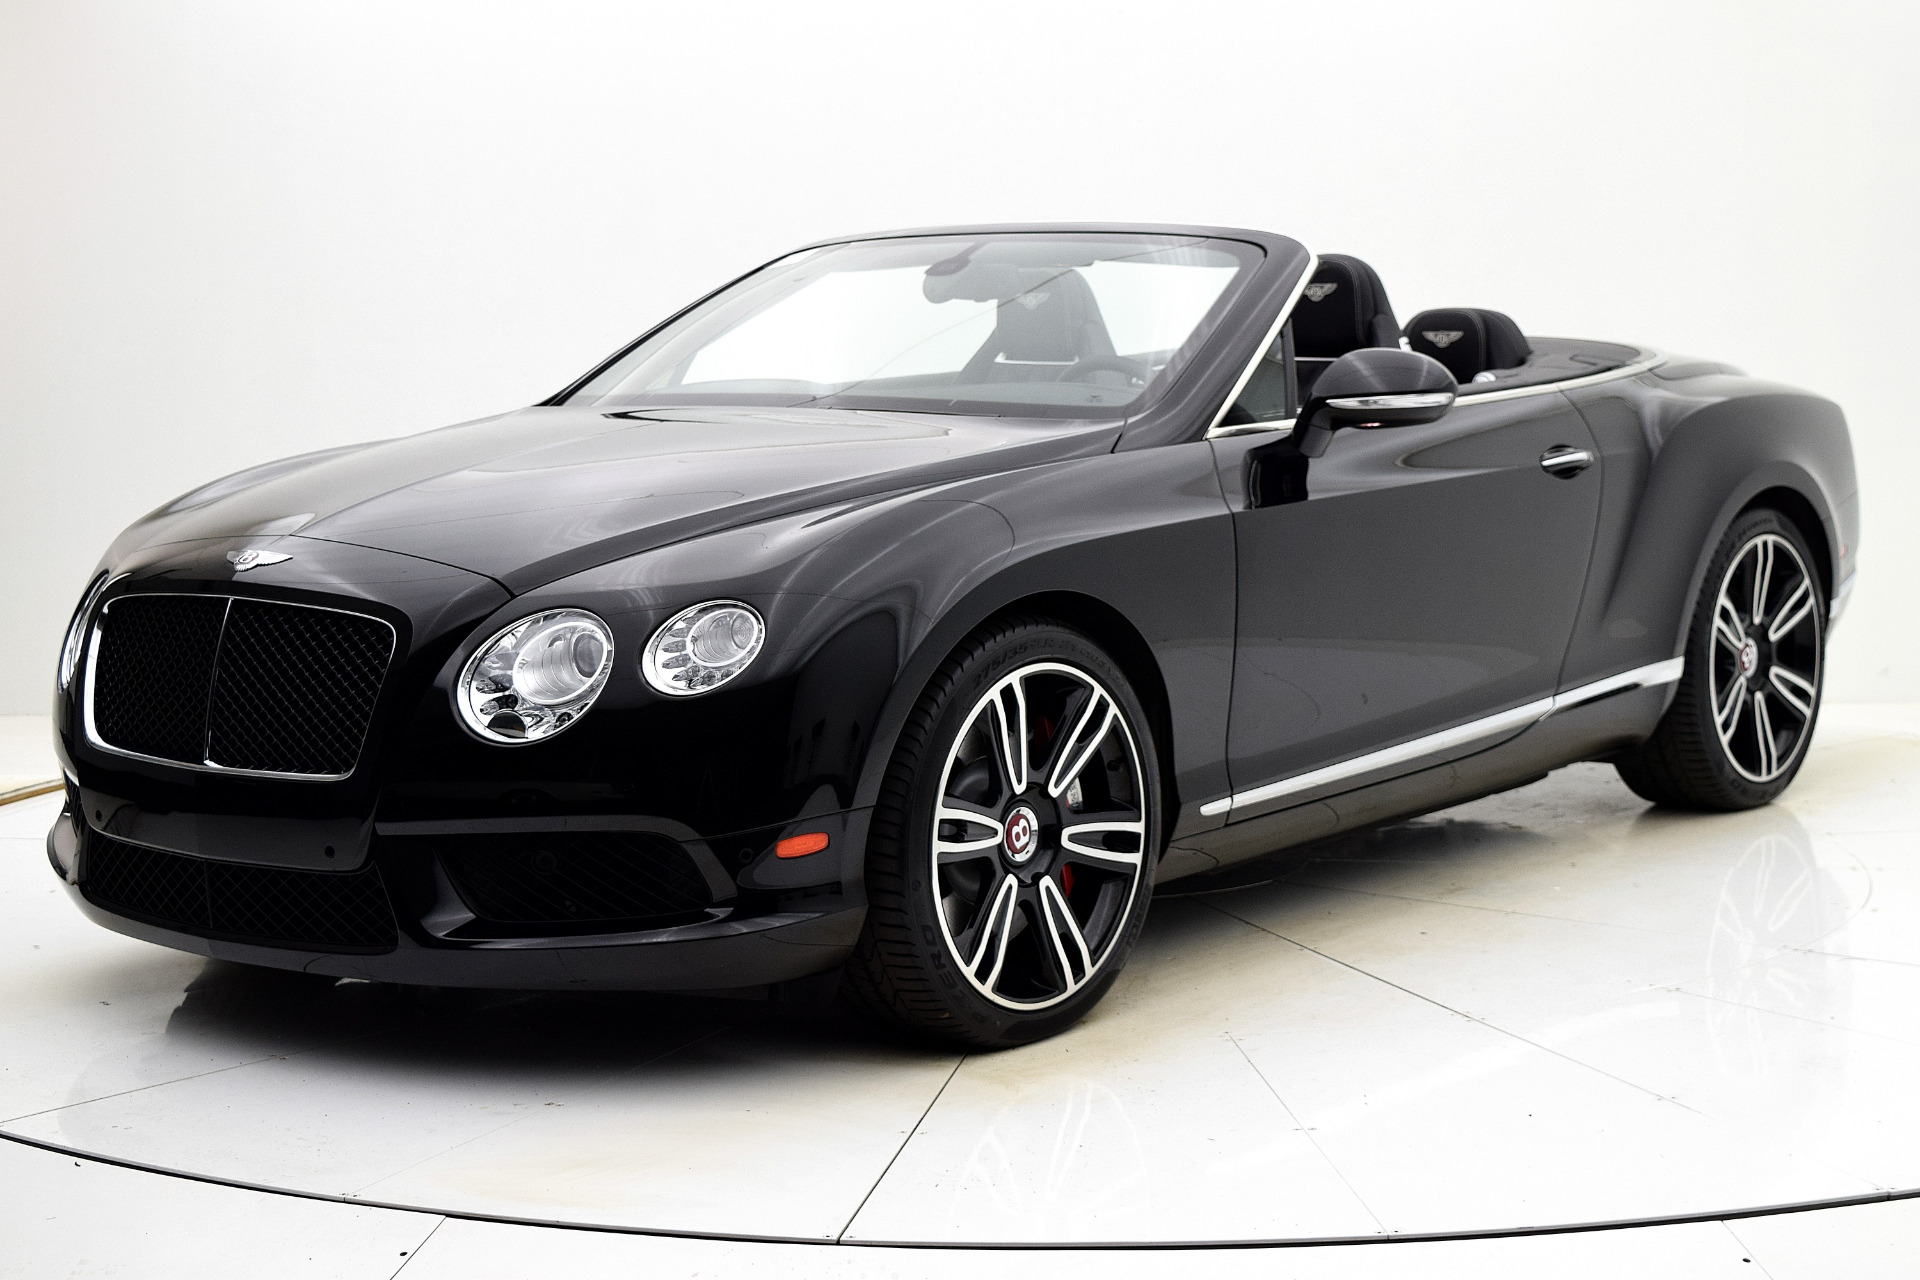 Used 2014 Bentley Continental GT V8 Convertible for sale $122,880 at F.C. Kerbeck Aston Martin in Palmyra NJ 08065 2